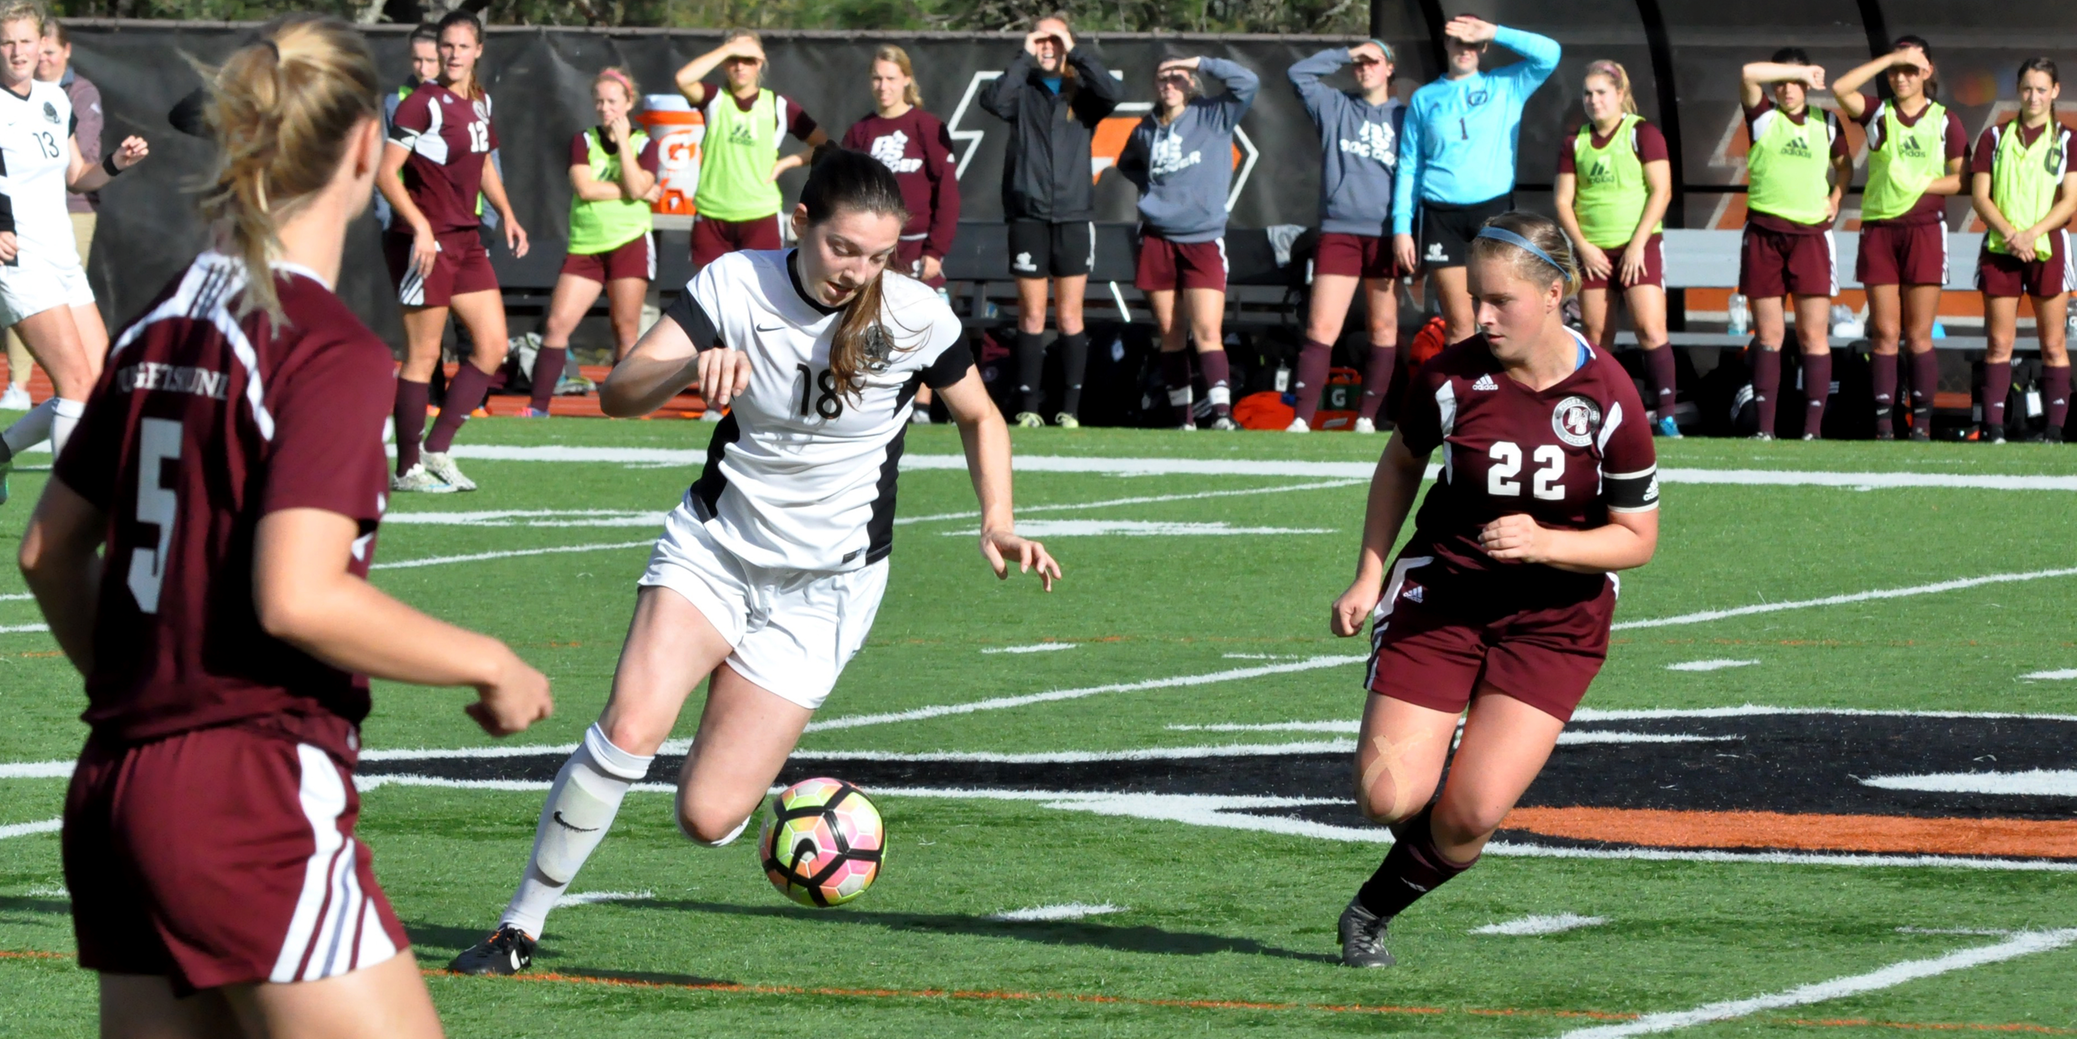 On Senior Day, Fikso's goal the difference over Puget Sound